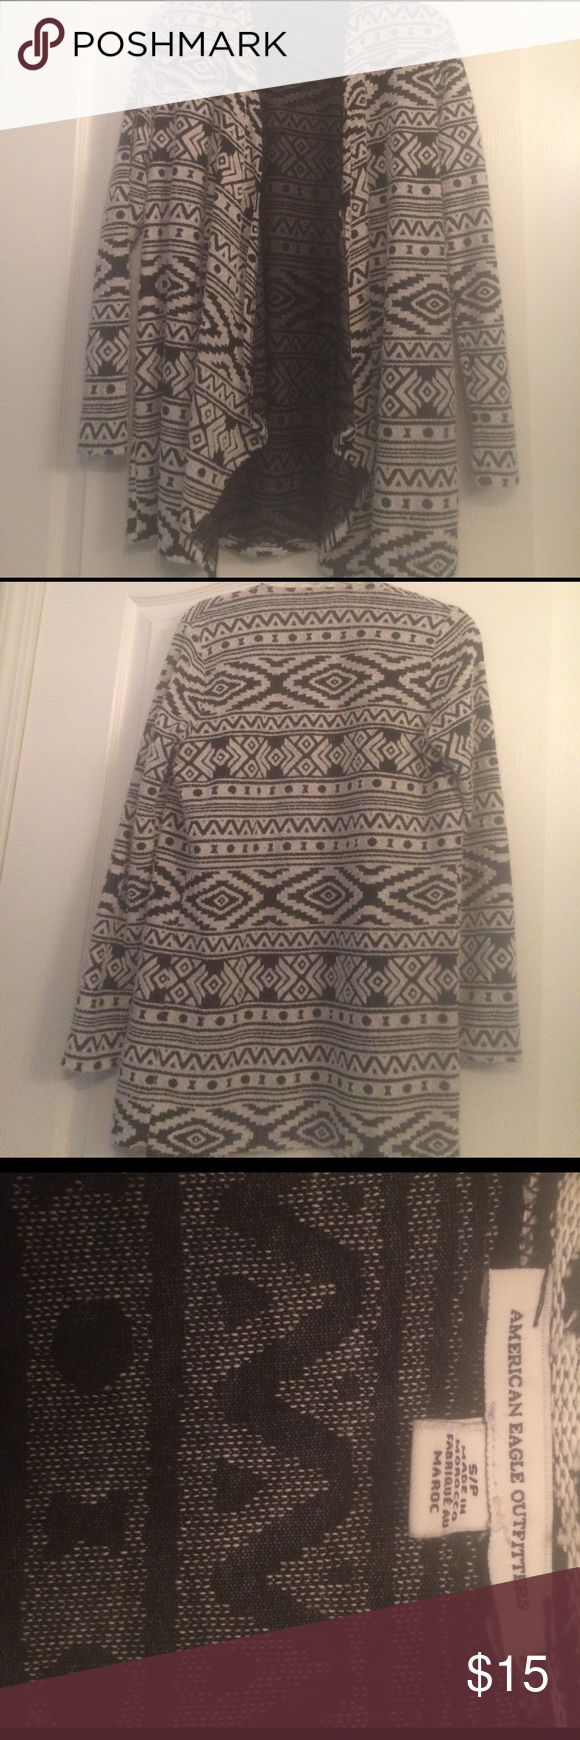 """American Eagle Aztec print cardigan Excellent used condition - only worn a couple times. Super soft. It has a really cool knit pattern - I tried to show in pictures. No buttons. It is a longer cardigan that is super cute with leggings or jeans. I am 5'1"""" and it completely covers my butt. American Eagle Outfitters Sweaters Cardigans"""